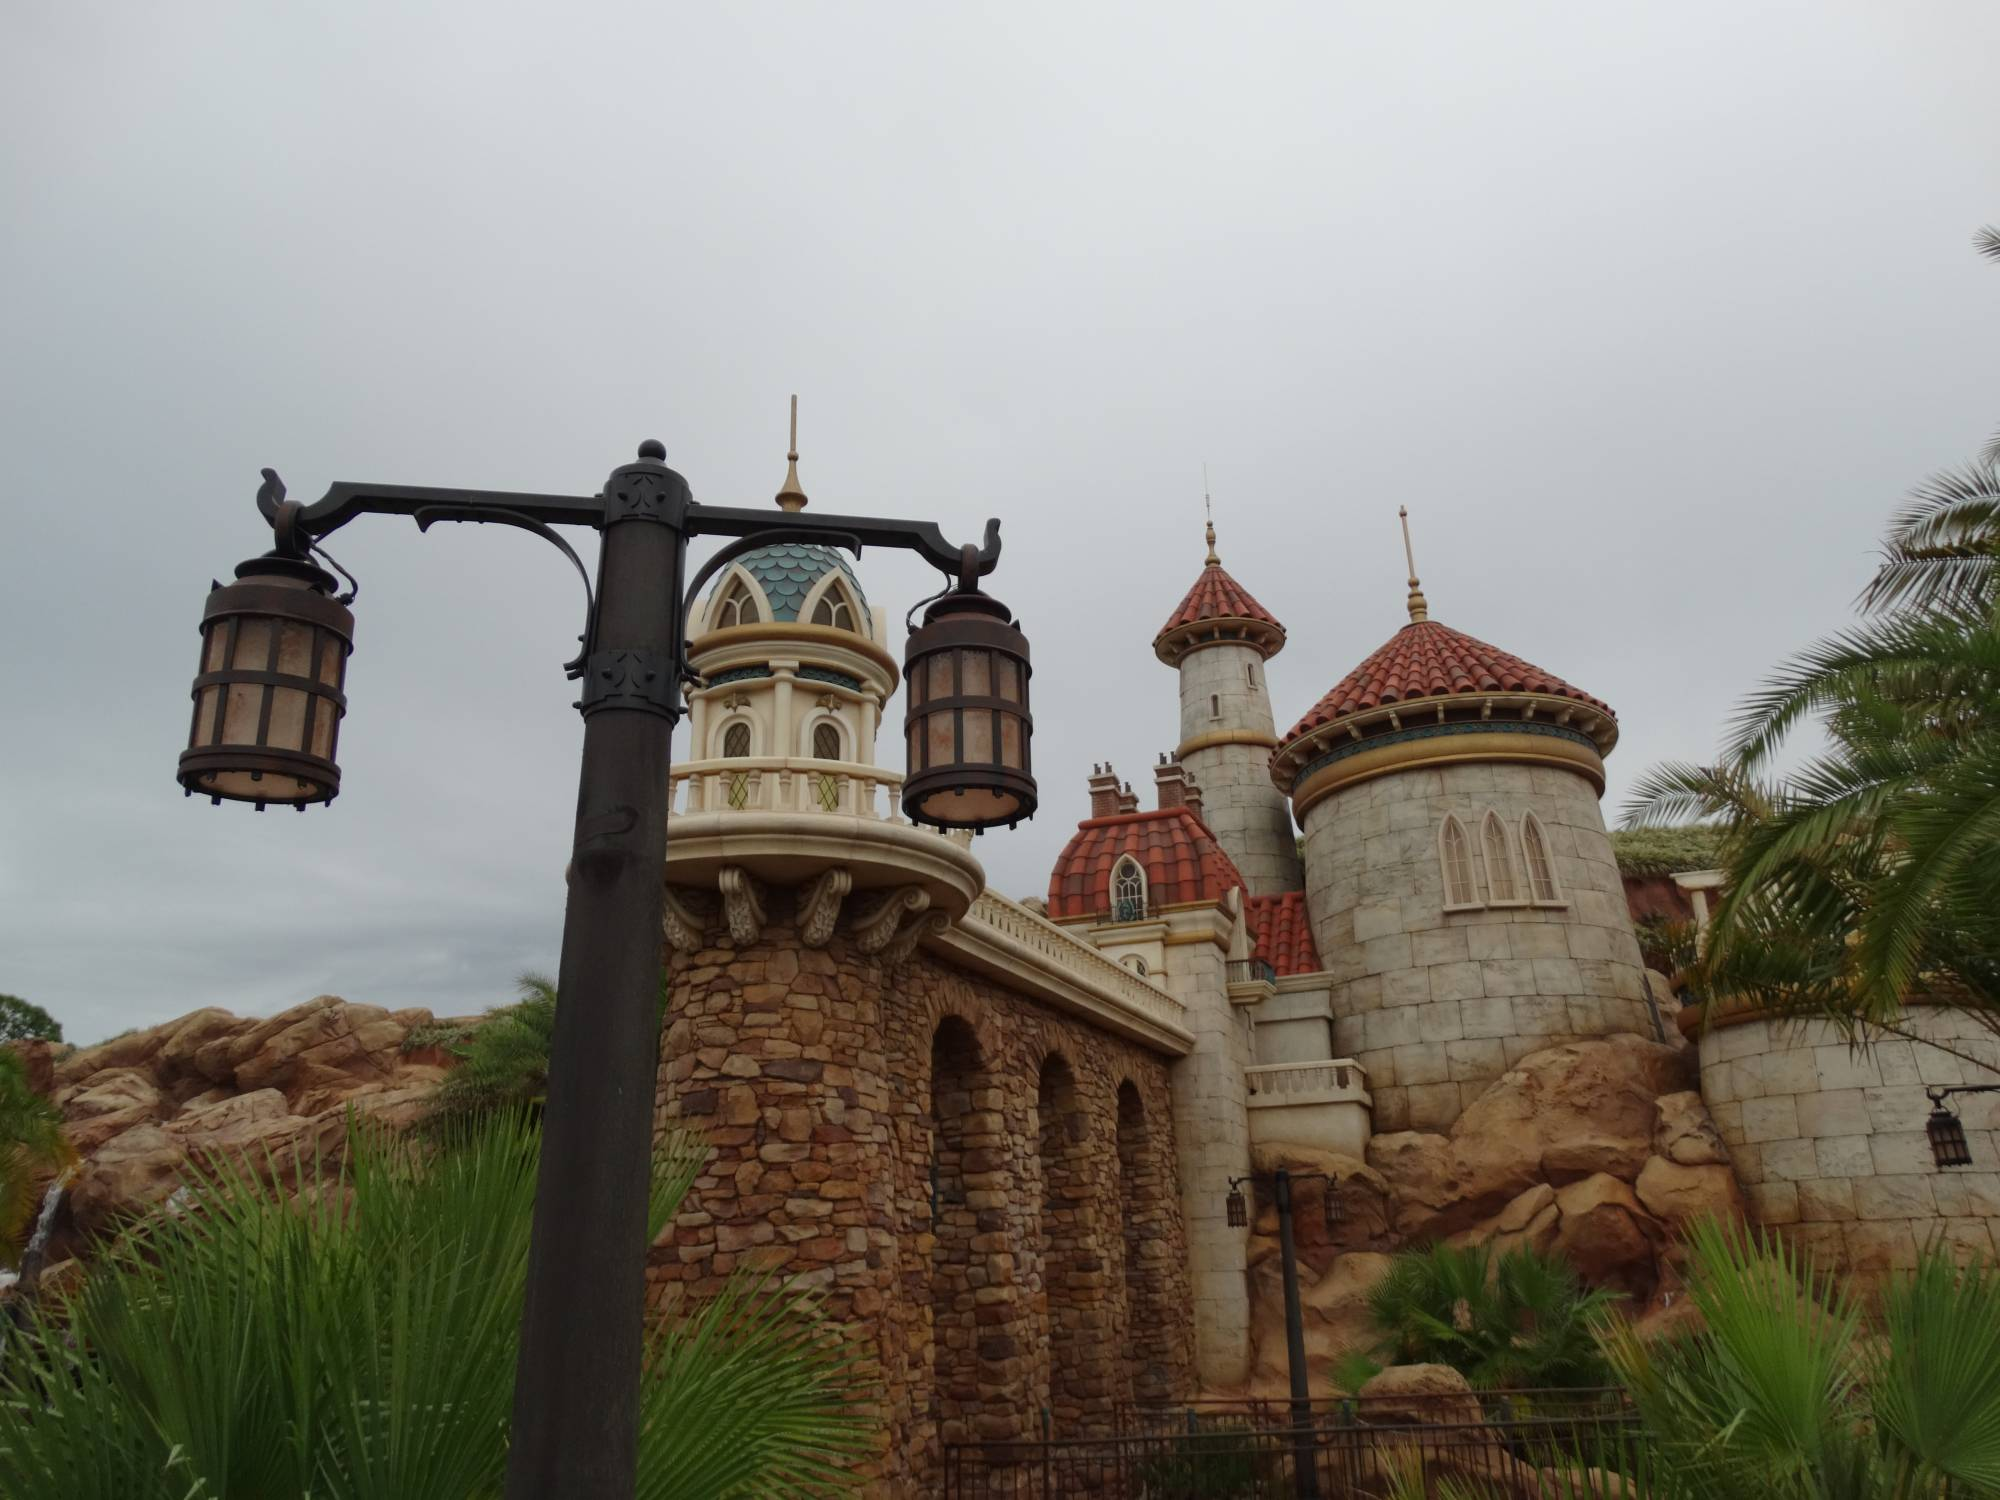 Enjoy the expanded Fantasyland at the Magic Kingdom |PassPorter.com